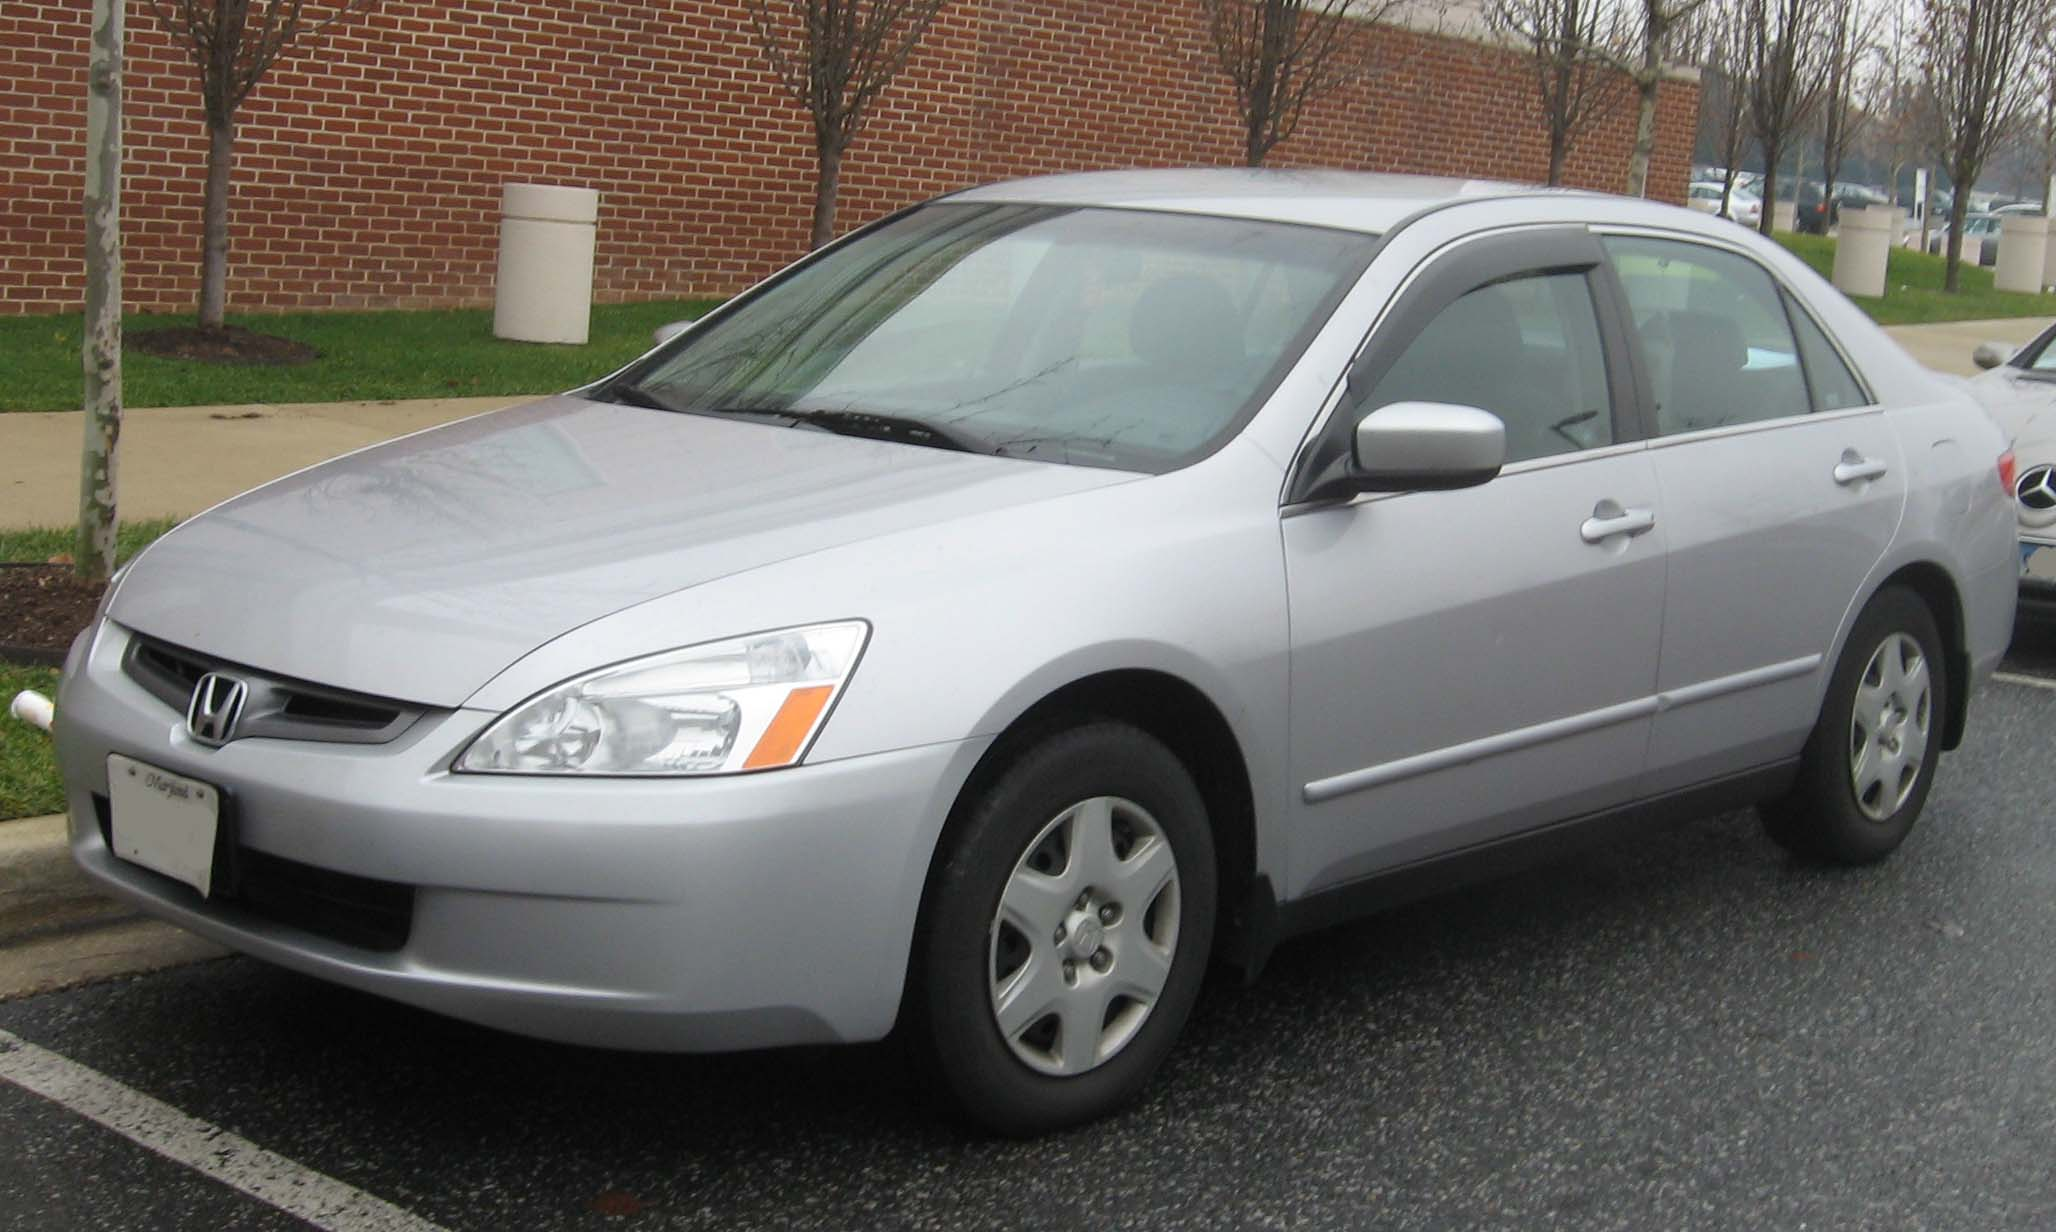 Honda Accord Sedan (2003)